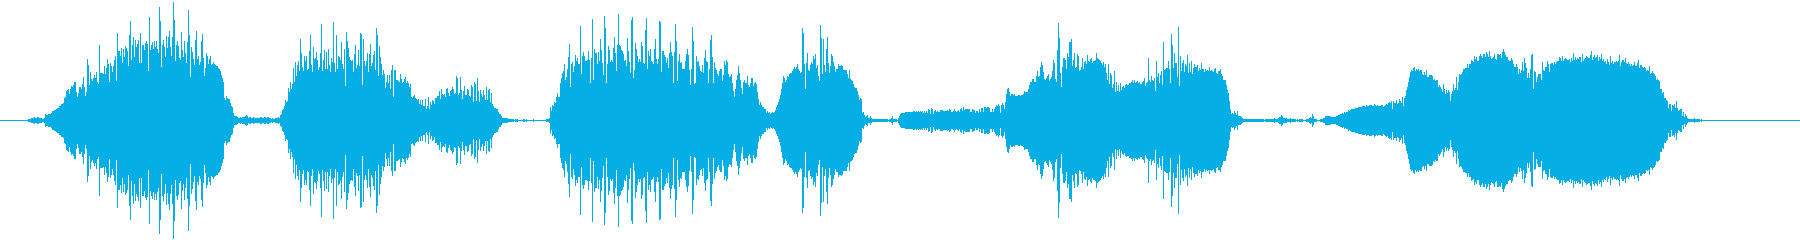 Thank you for subscribing to the channel's reproduced waveform